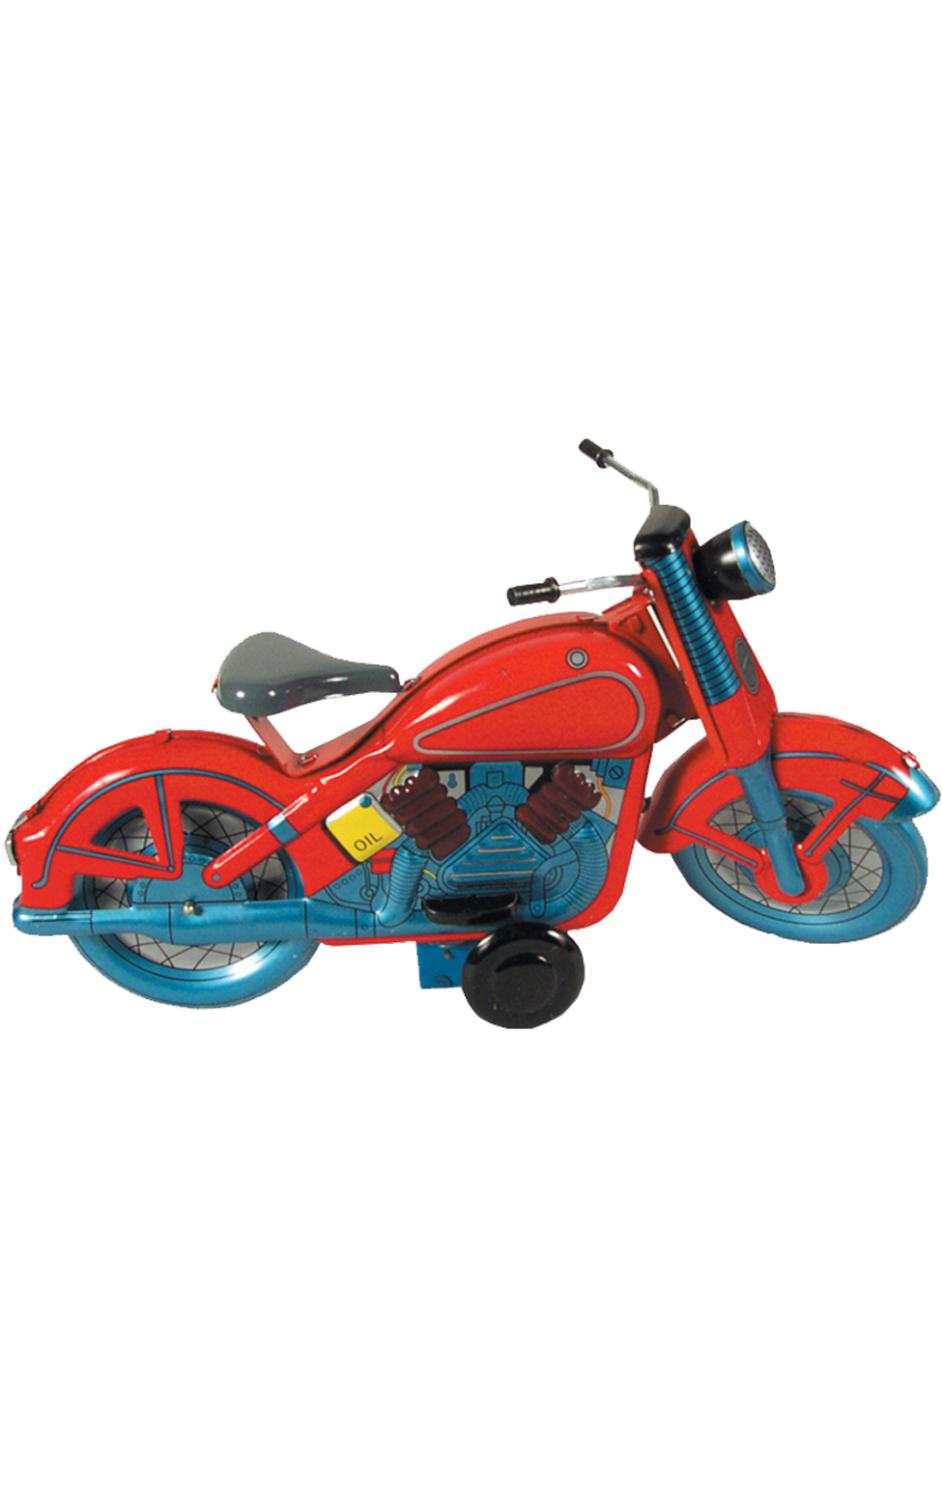 MS359 - Collectible Tin Toy - Motorcycle - 5